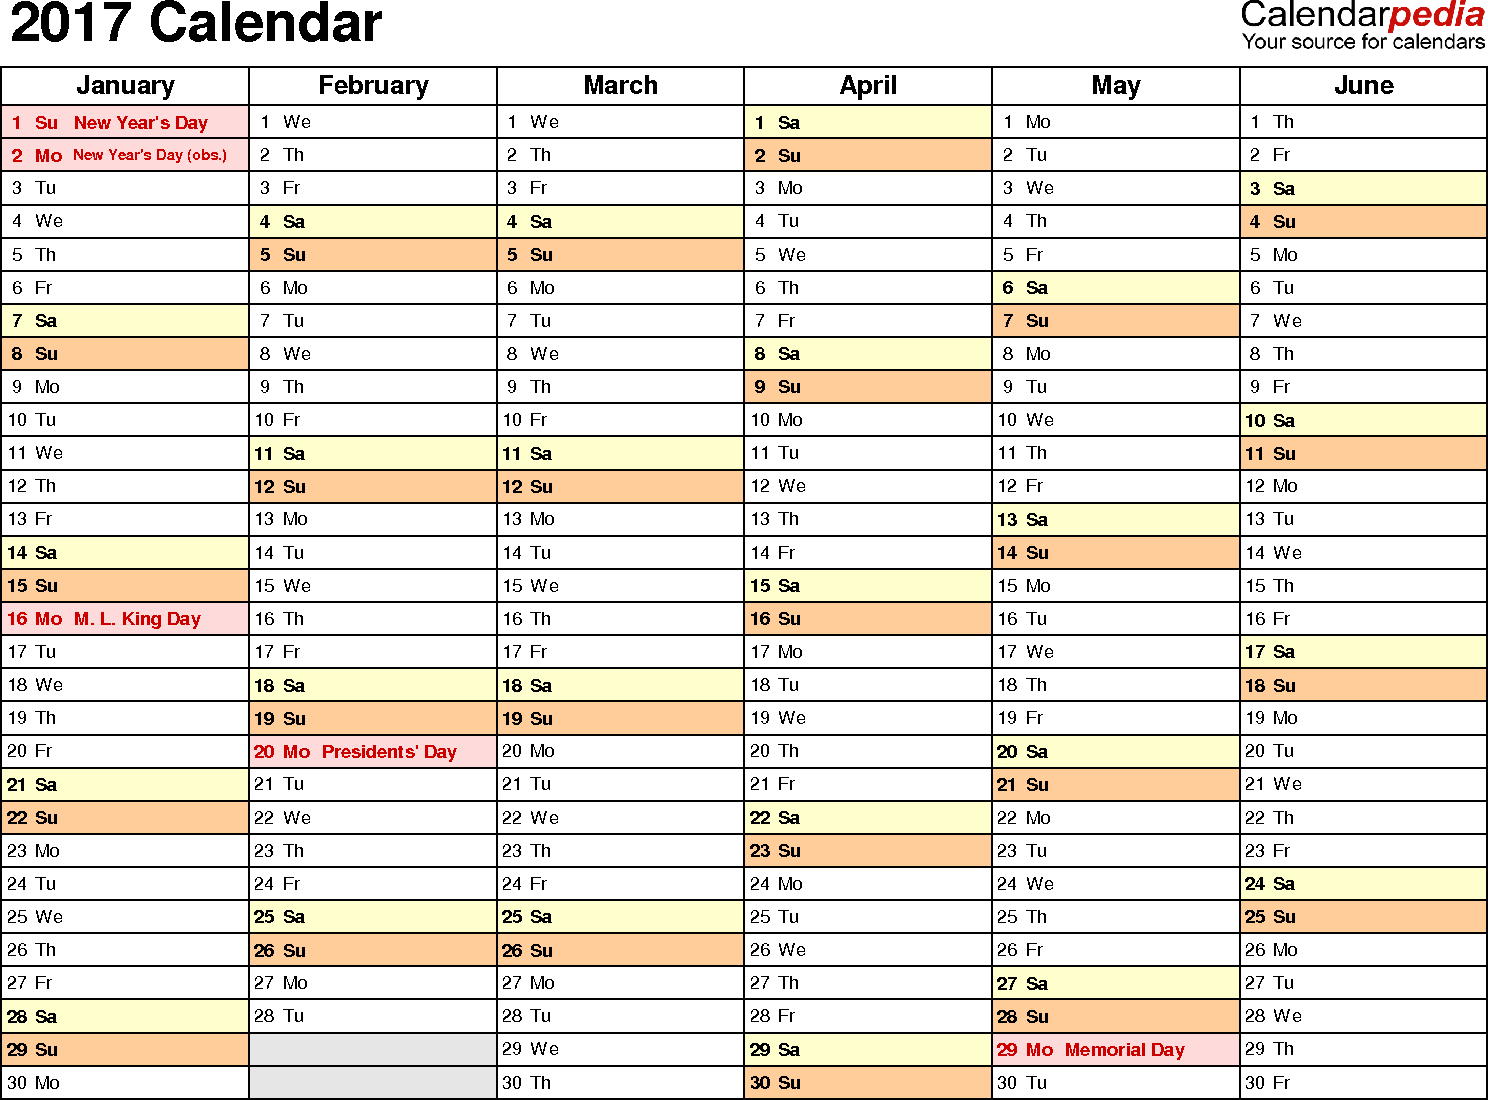 Ediblewildsus  Marvellous  Calendar  Download  Free Printable Excel Templates Xls With Marvelous Template   Calendar For Excel Months Horizontally  Pages Landscape Orientation With Nice If And Formula In Excel Also Conditional Formula Excel In Addition Match Function In Excel  And Excel Pdf Converter As Well As Microsoft Excel Checklist Template Additionally Excel Repeat Last Command From Calendarpediacom With Ediblewildsus  Marvelous  Calendar  Download  Free Printable Excel Templates Xls With Nice Template   Calendar For Excel Months Horizontally  Pages Landscape Orientation And Marvellous If And Formula In Excel Also Conditional Formula Excel In Addition Match Function In Excel  From Calendarpediacom